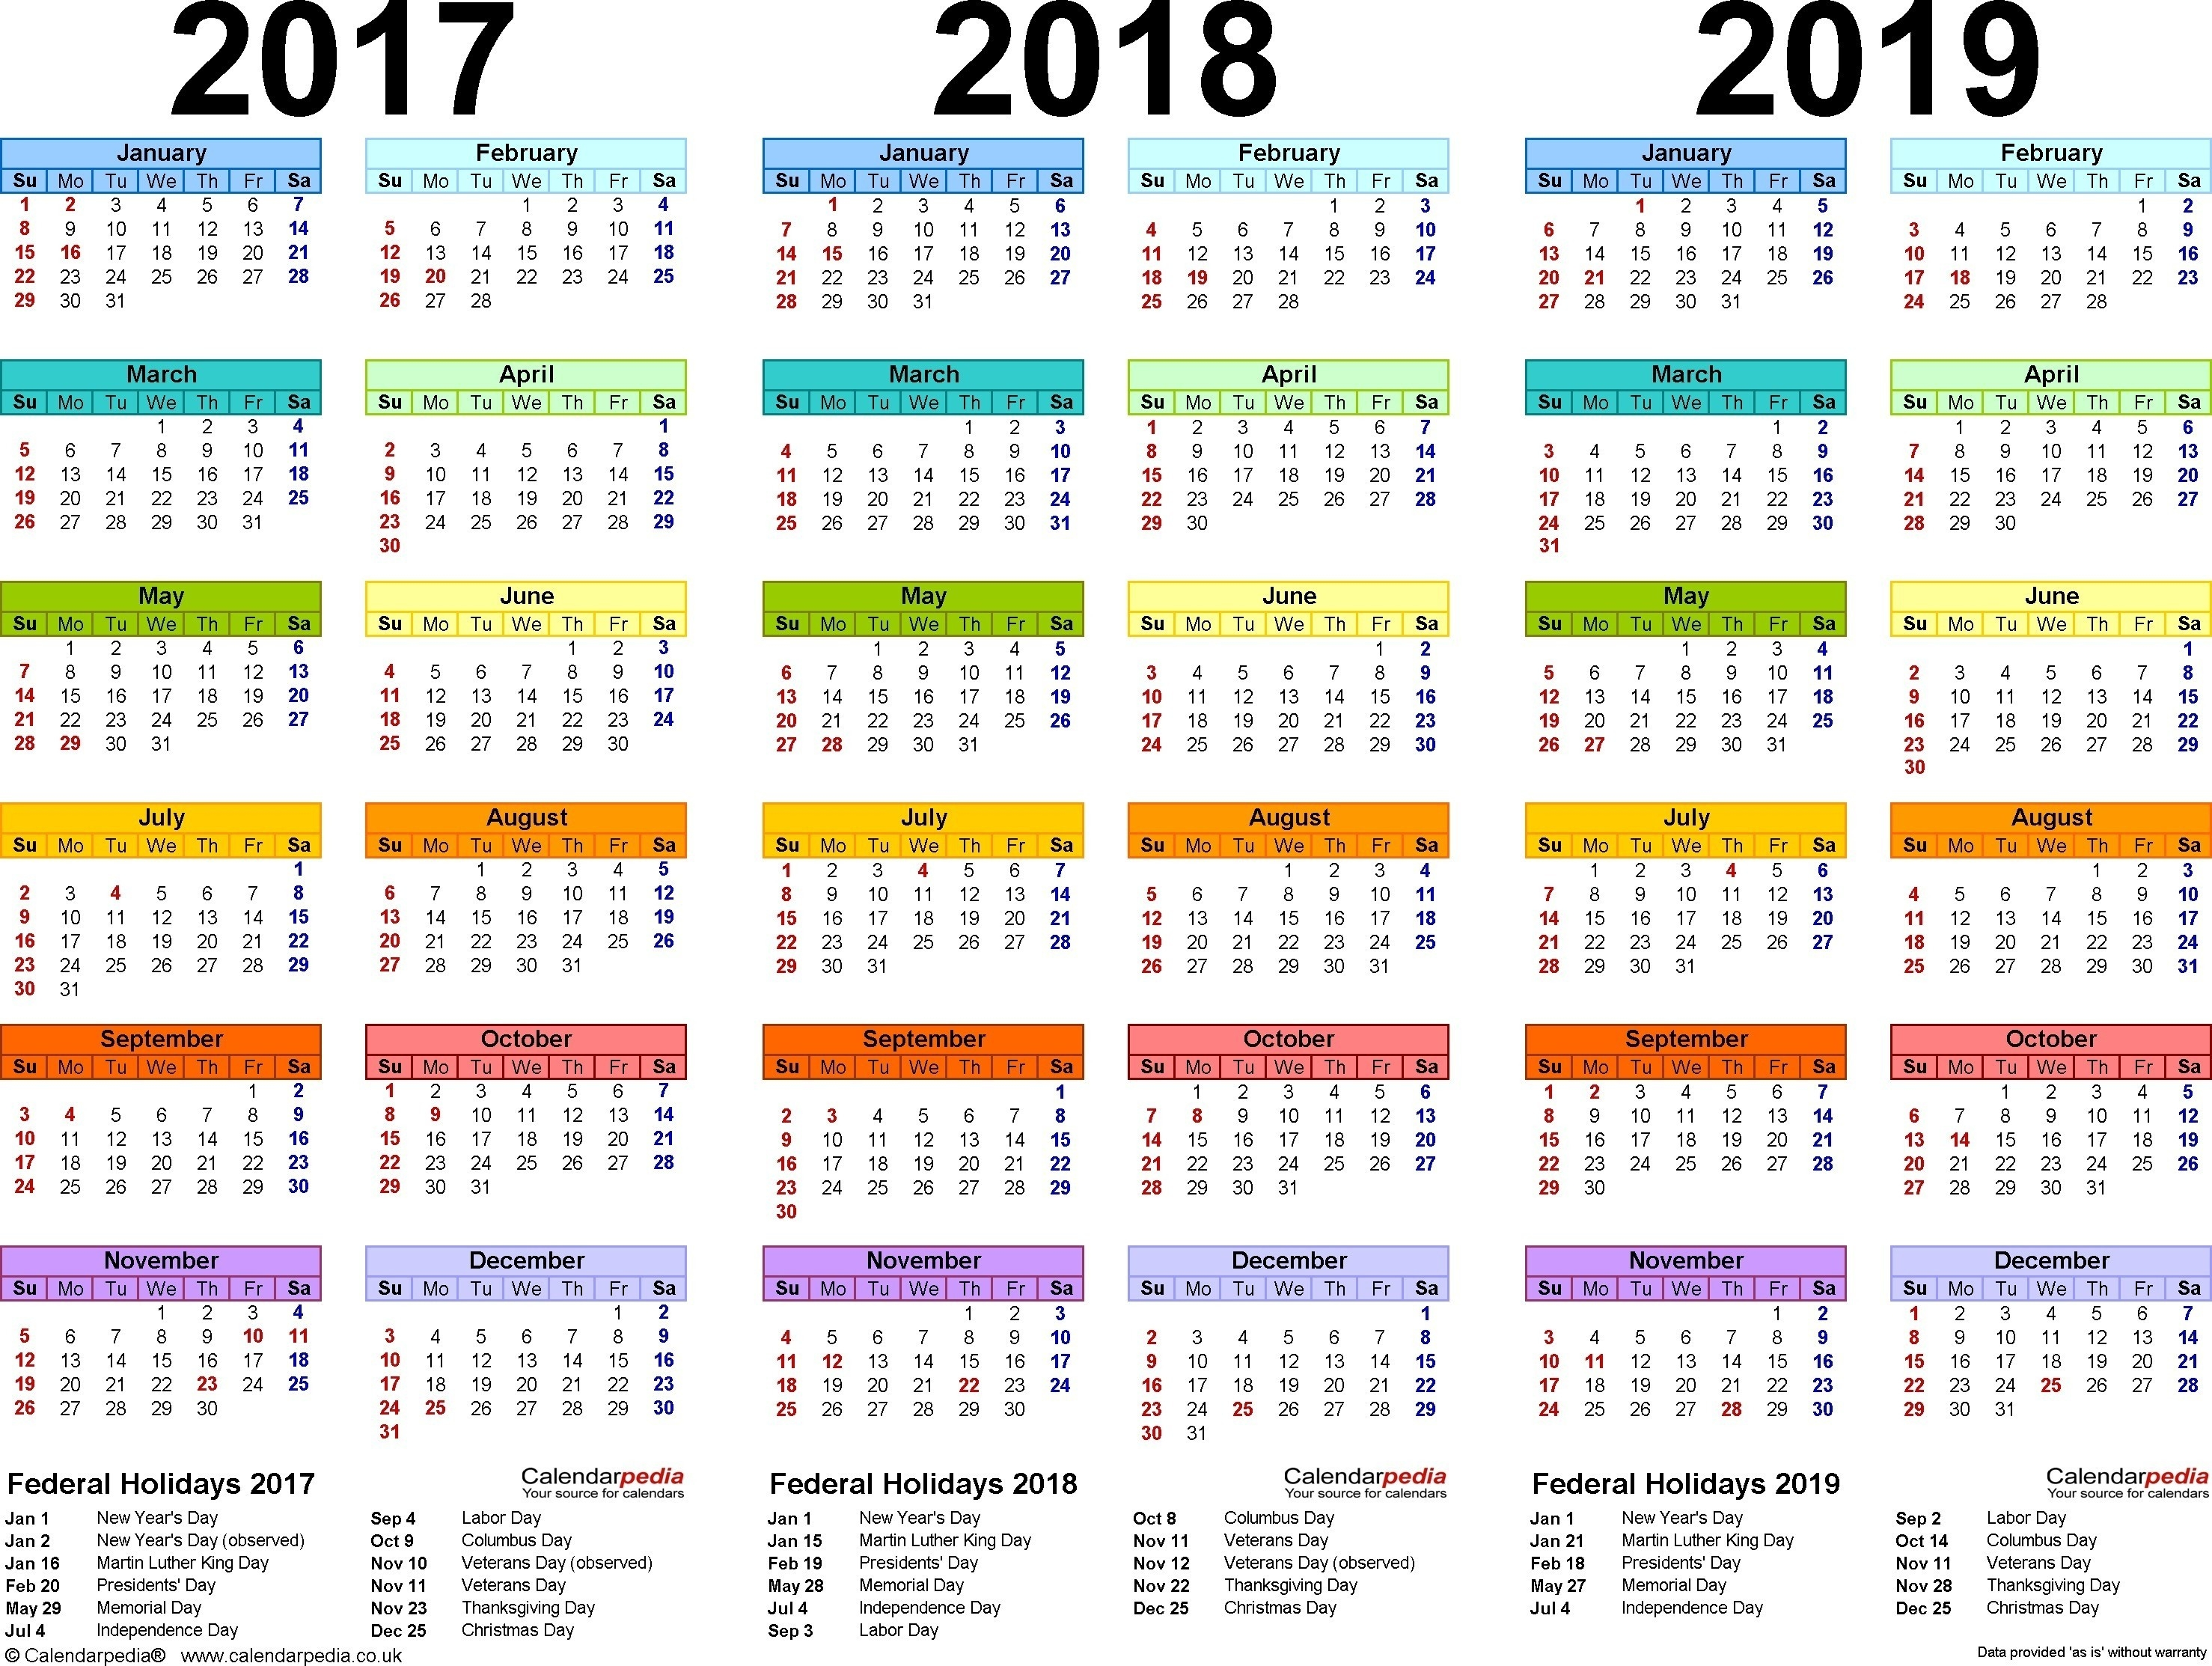 Depo Provera Calendar 2019 Printable Download For Free  Depo Calendar 2020